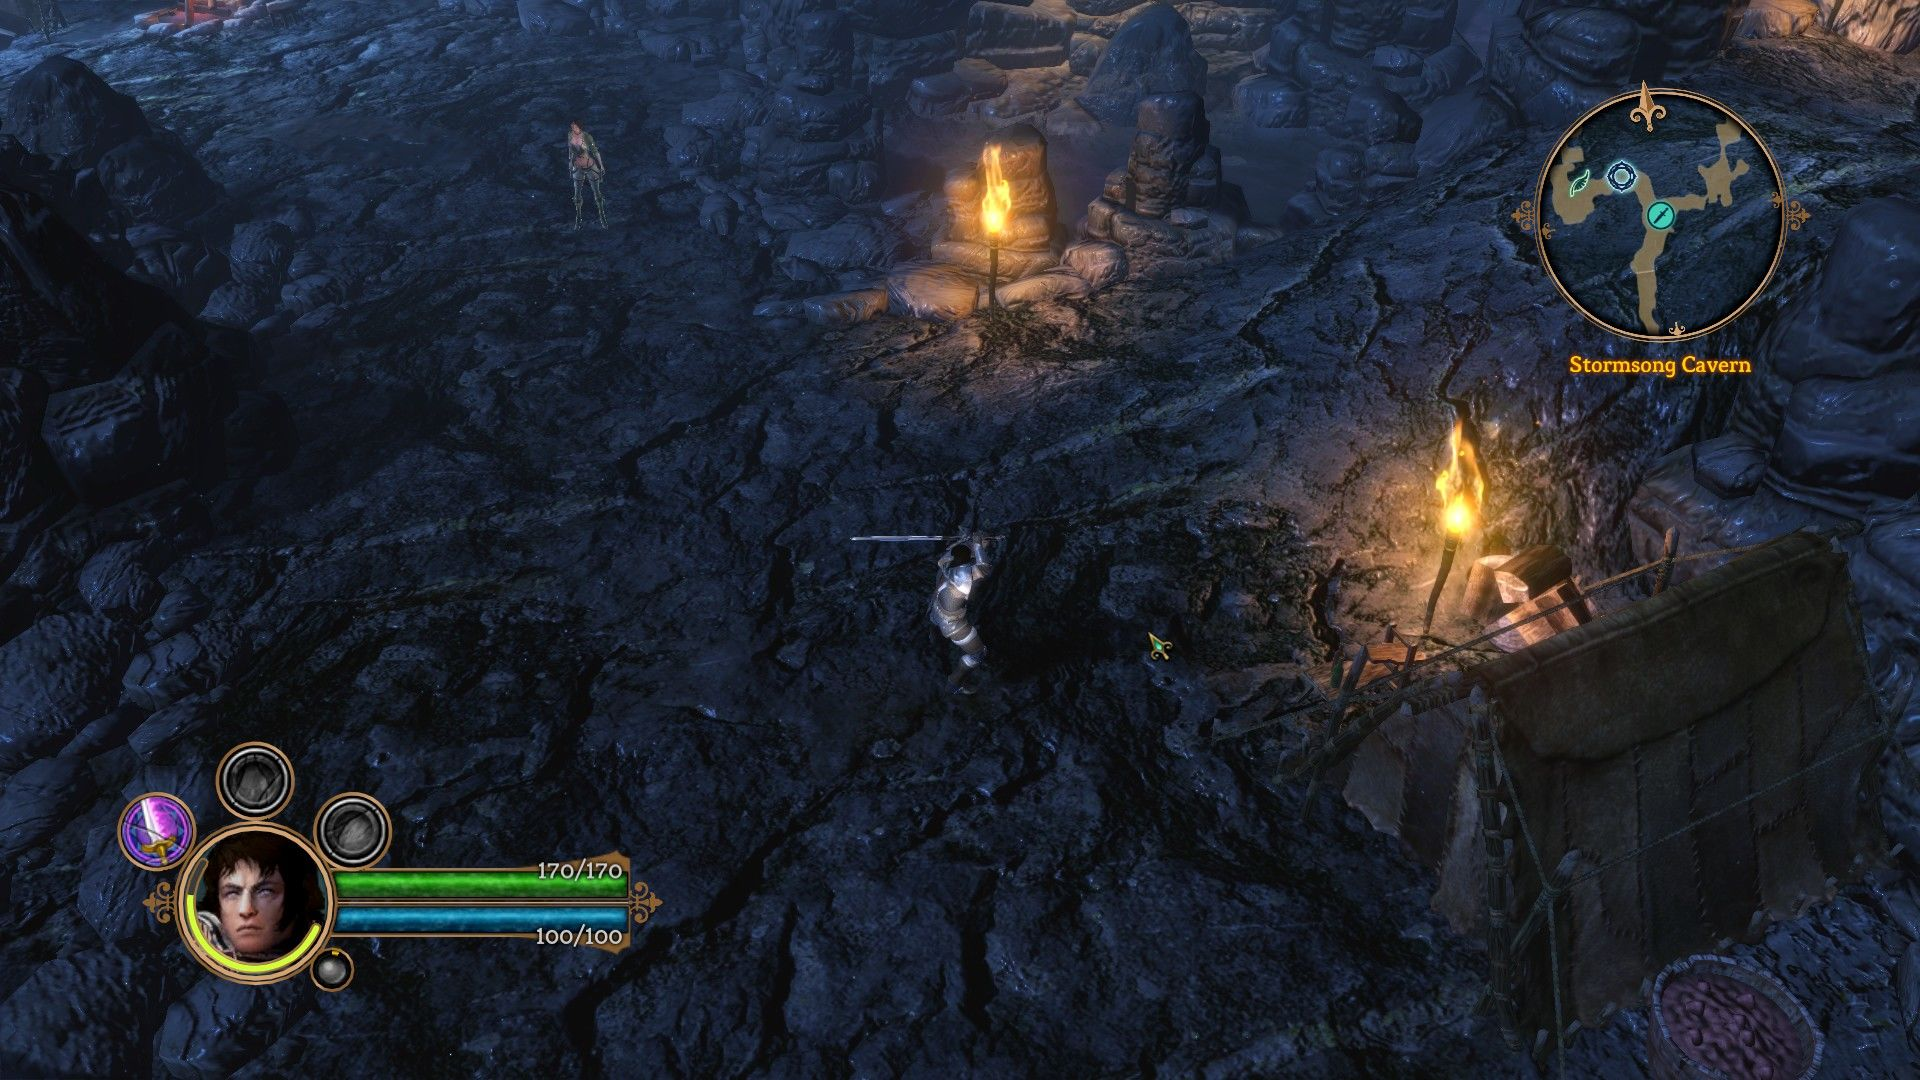 Dungeon Siege III Windows Inside Stormsong Cavern